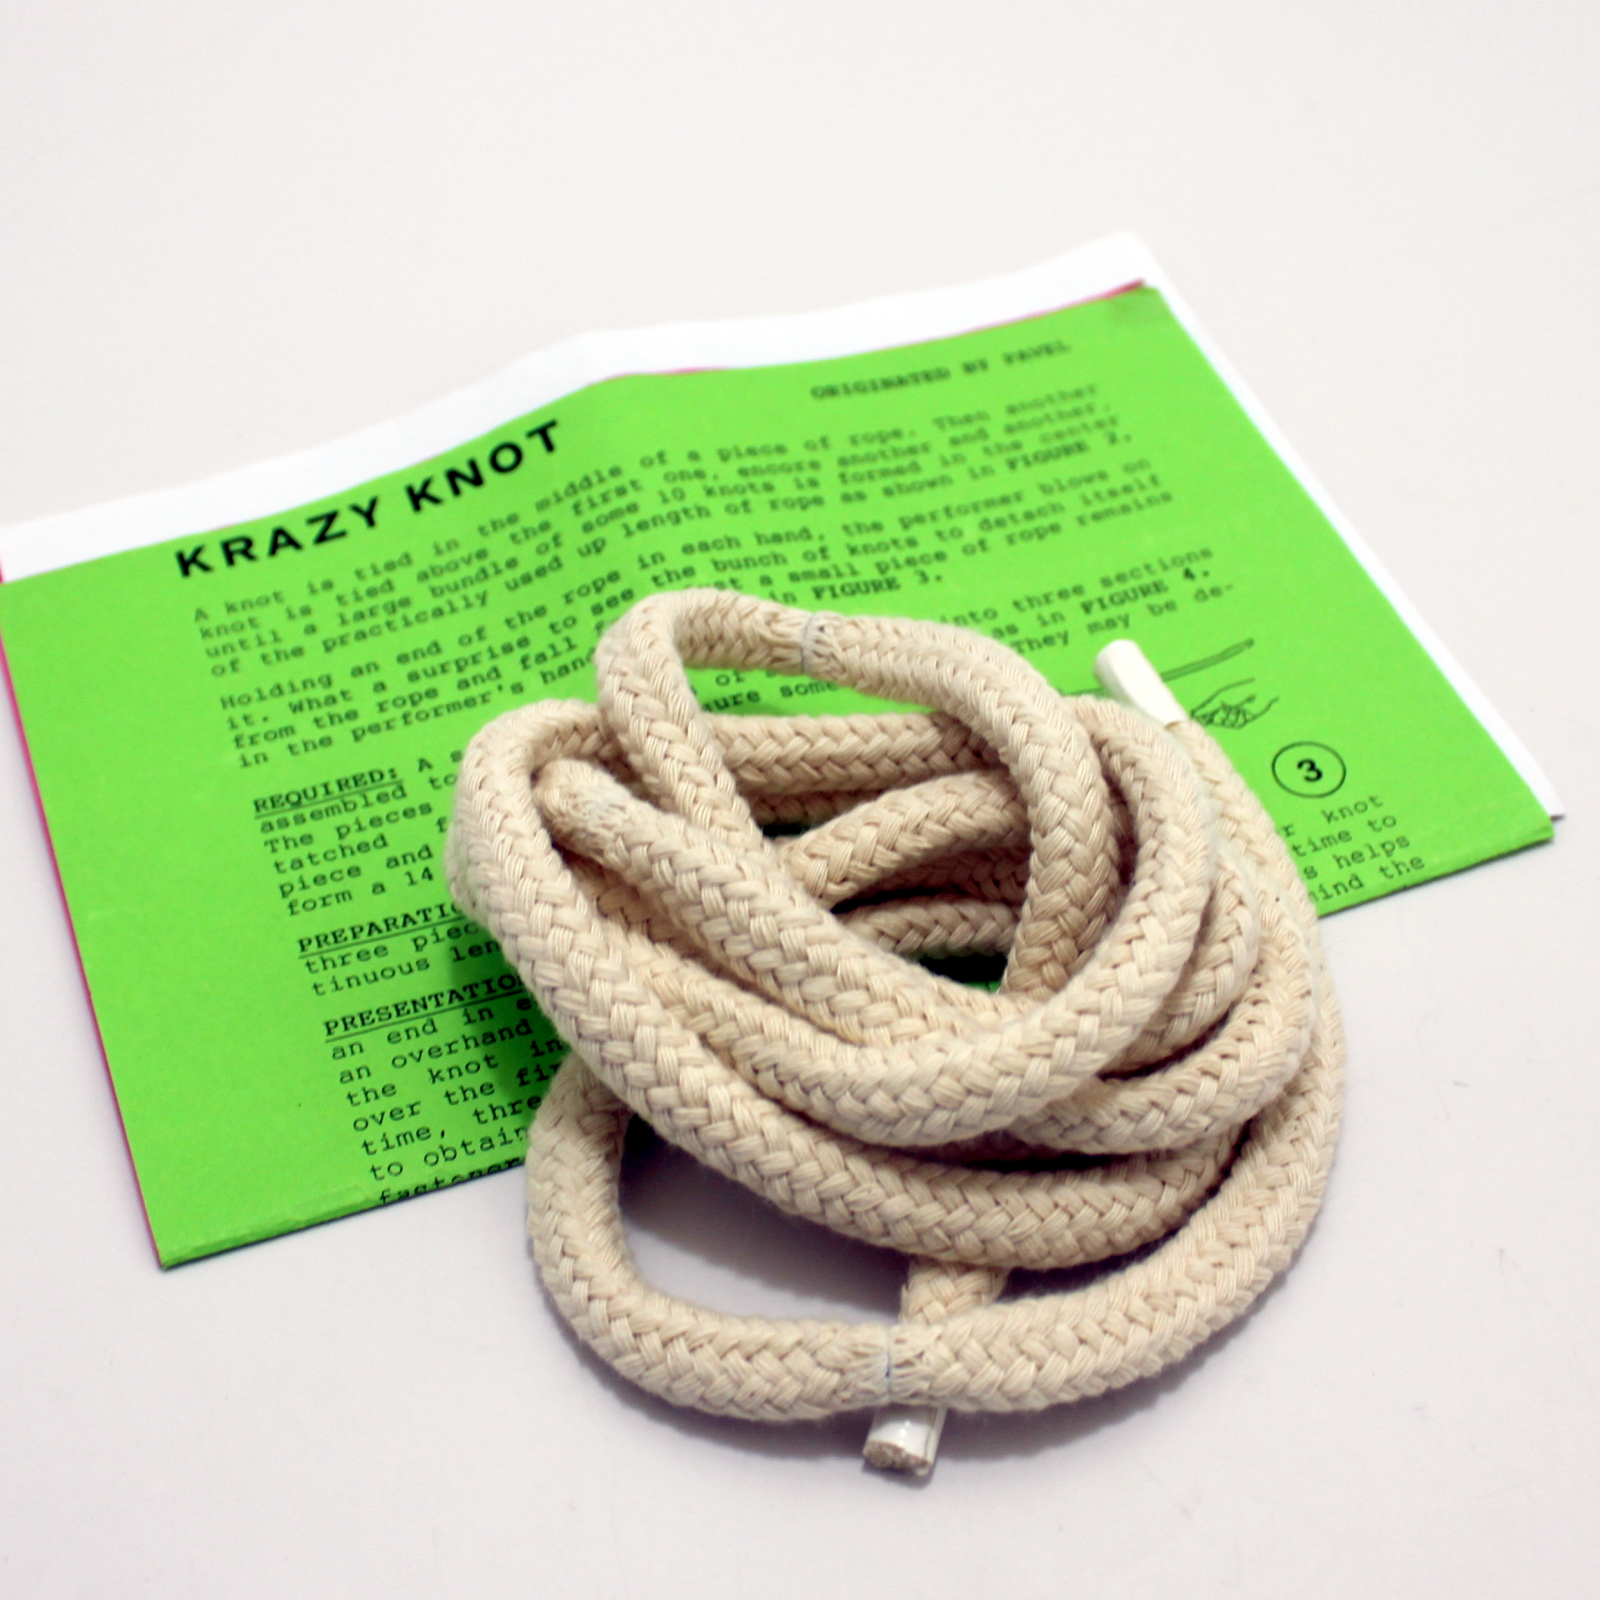 Krazy Knot by Pavel